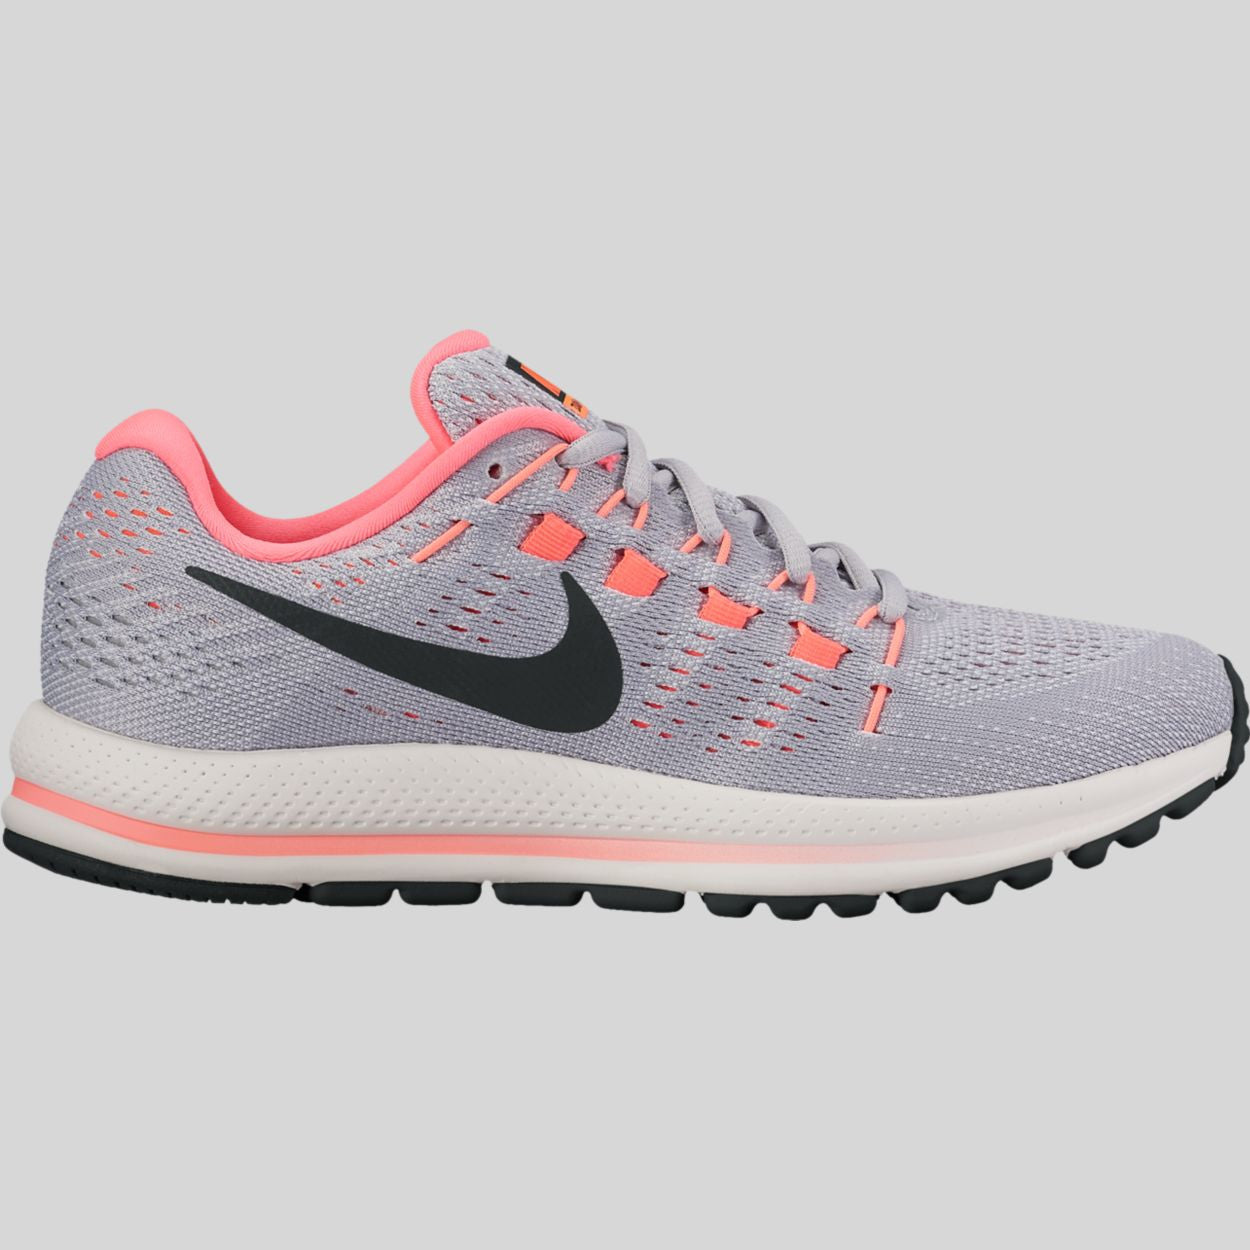 98adc305a2d32 Nike Wmns Air Zoom Vomero 12 Wolf Grey Black Pure Platinum Hot Punch  (863766-